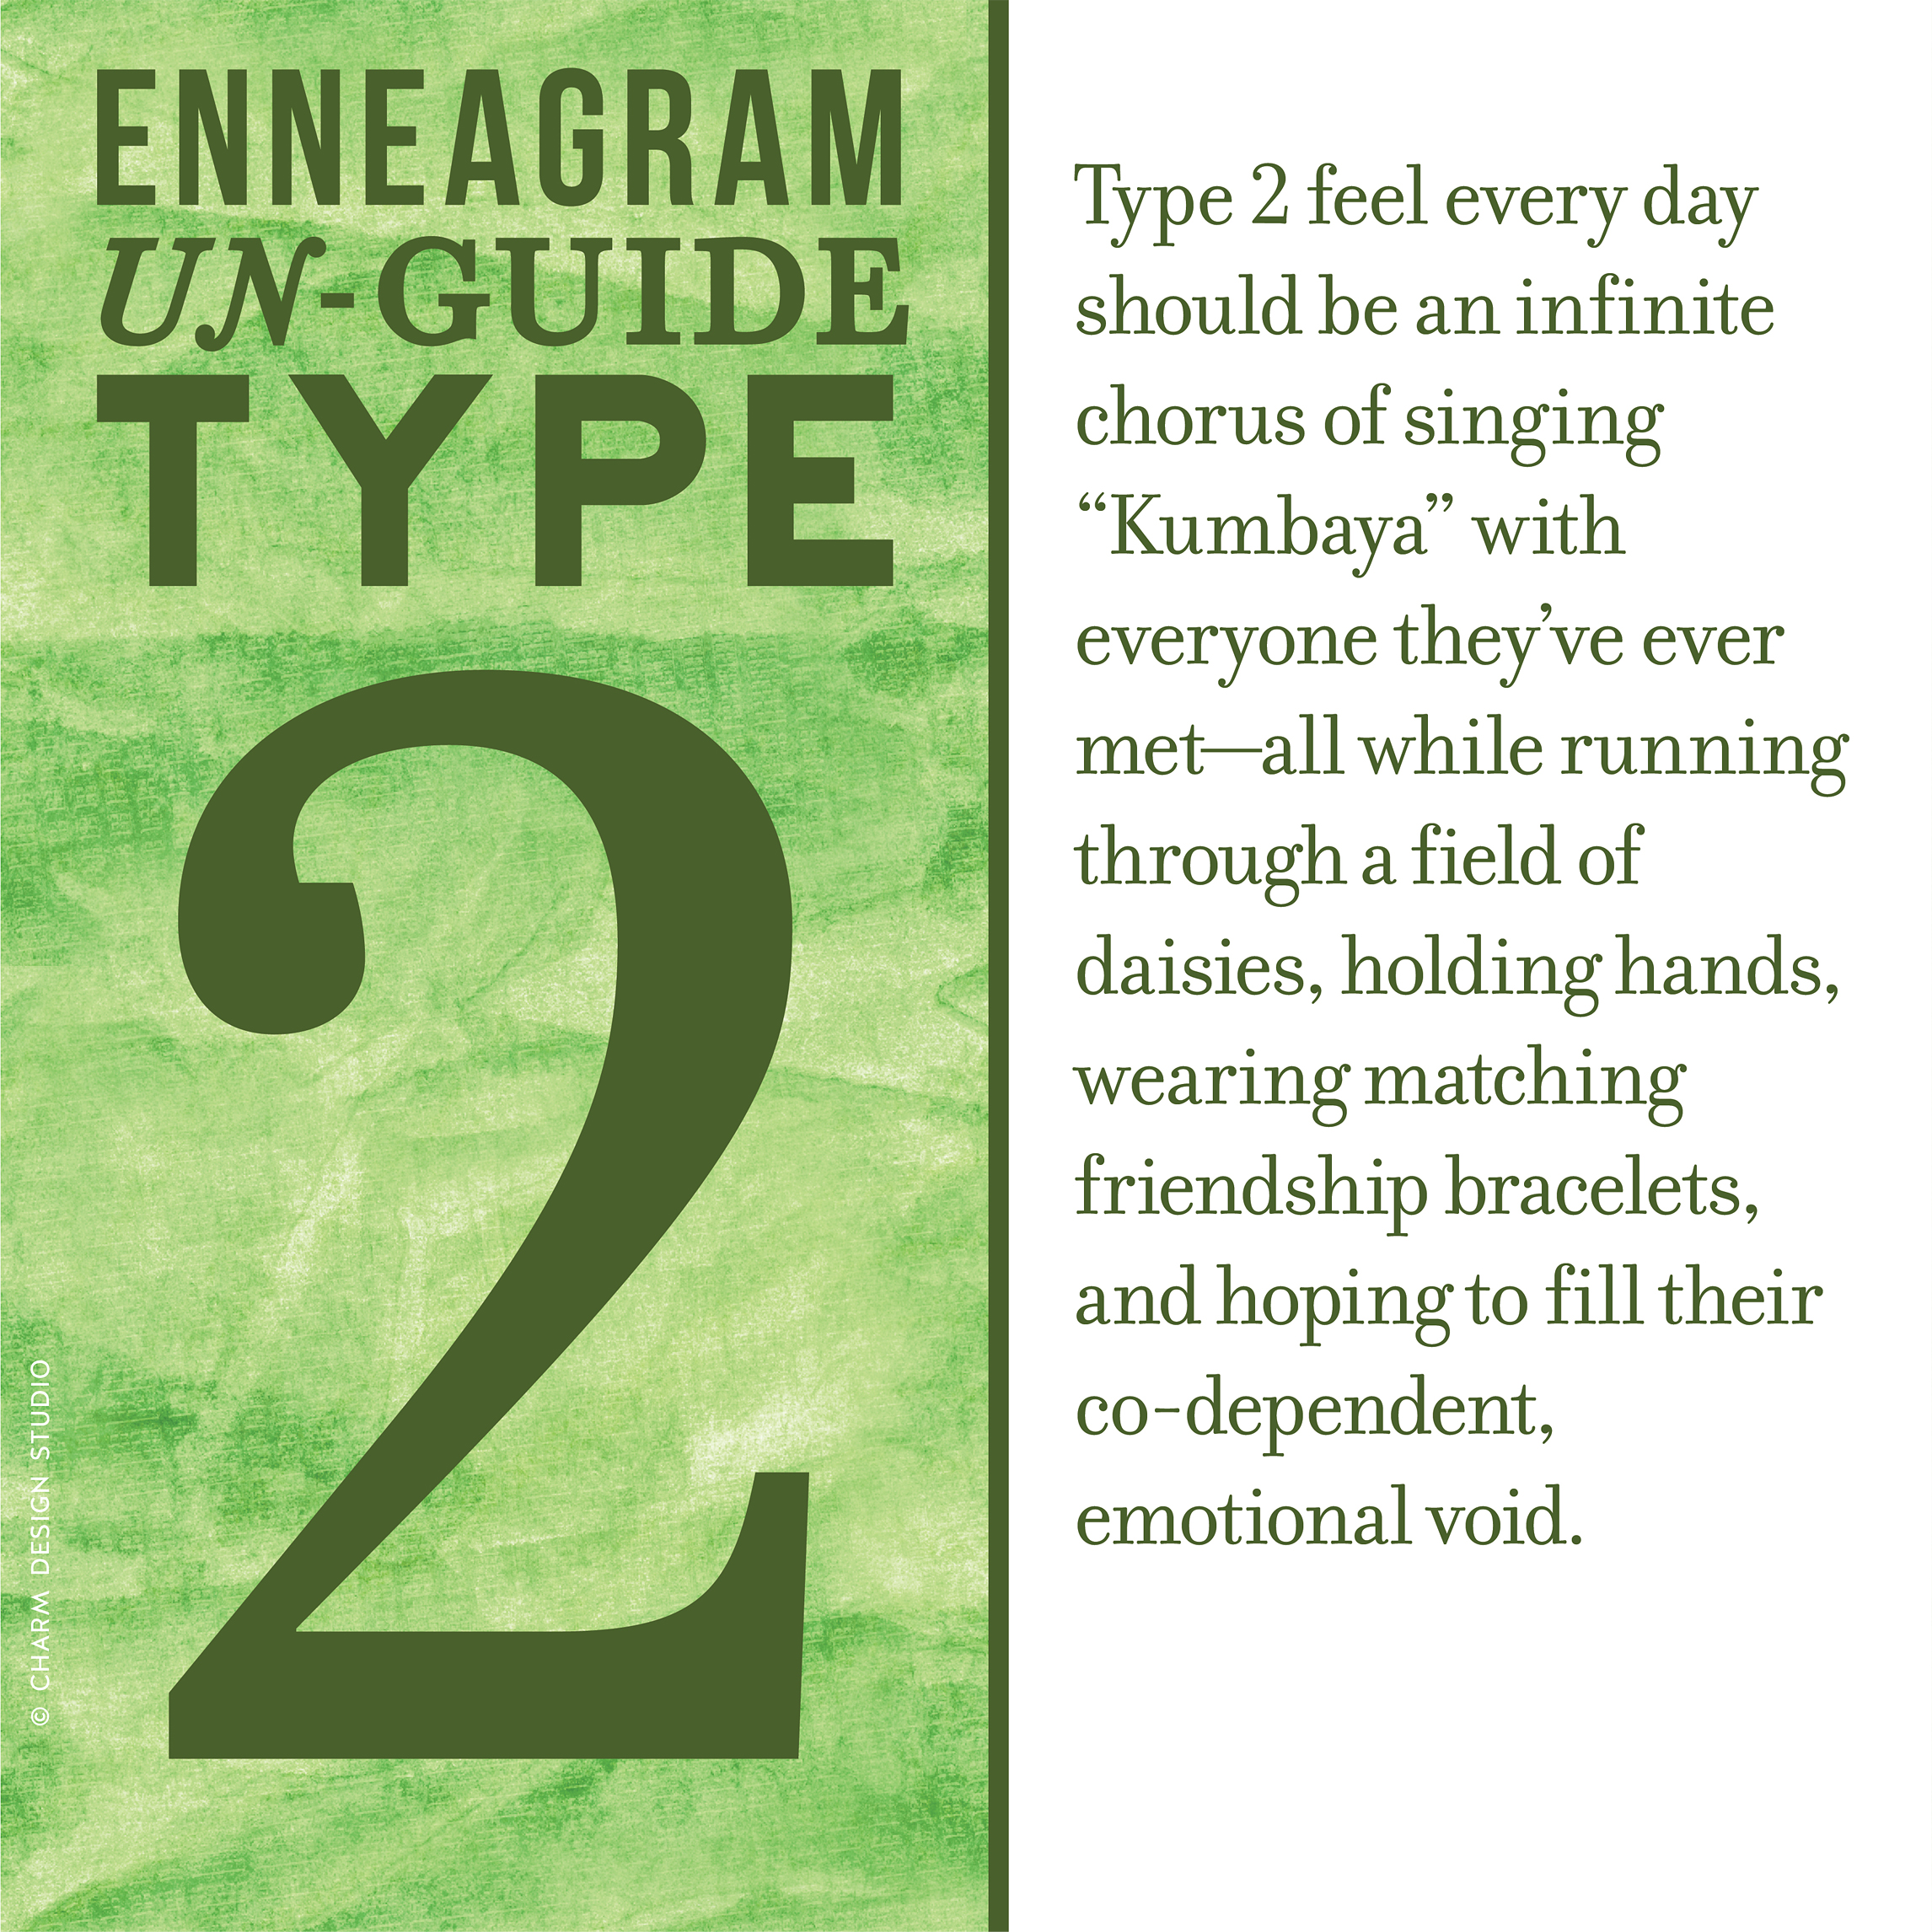 "Enneagram Un-Guide: Type 2 feel every day should be an infinite chorus of singing ""Kumbaya"" with everyone they've ever met—all while running through a field of daisies, holding hands, wearing matching friendship bracelets, and hoping to fill their co-dependent, emotional void. / Design and words © Charm Design Studio"